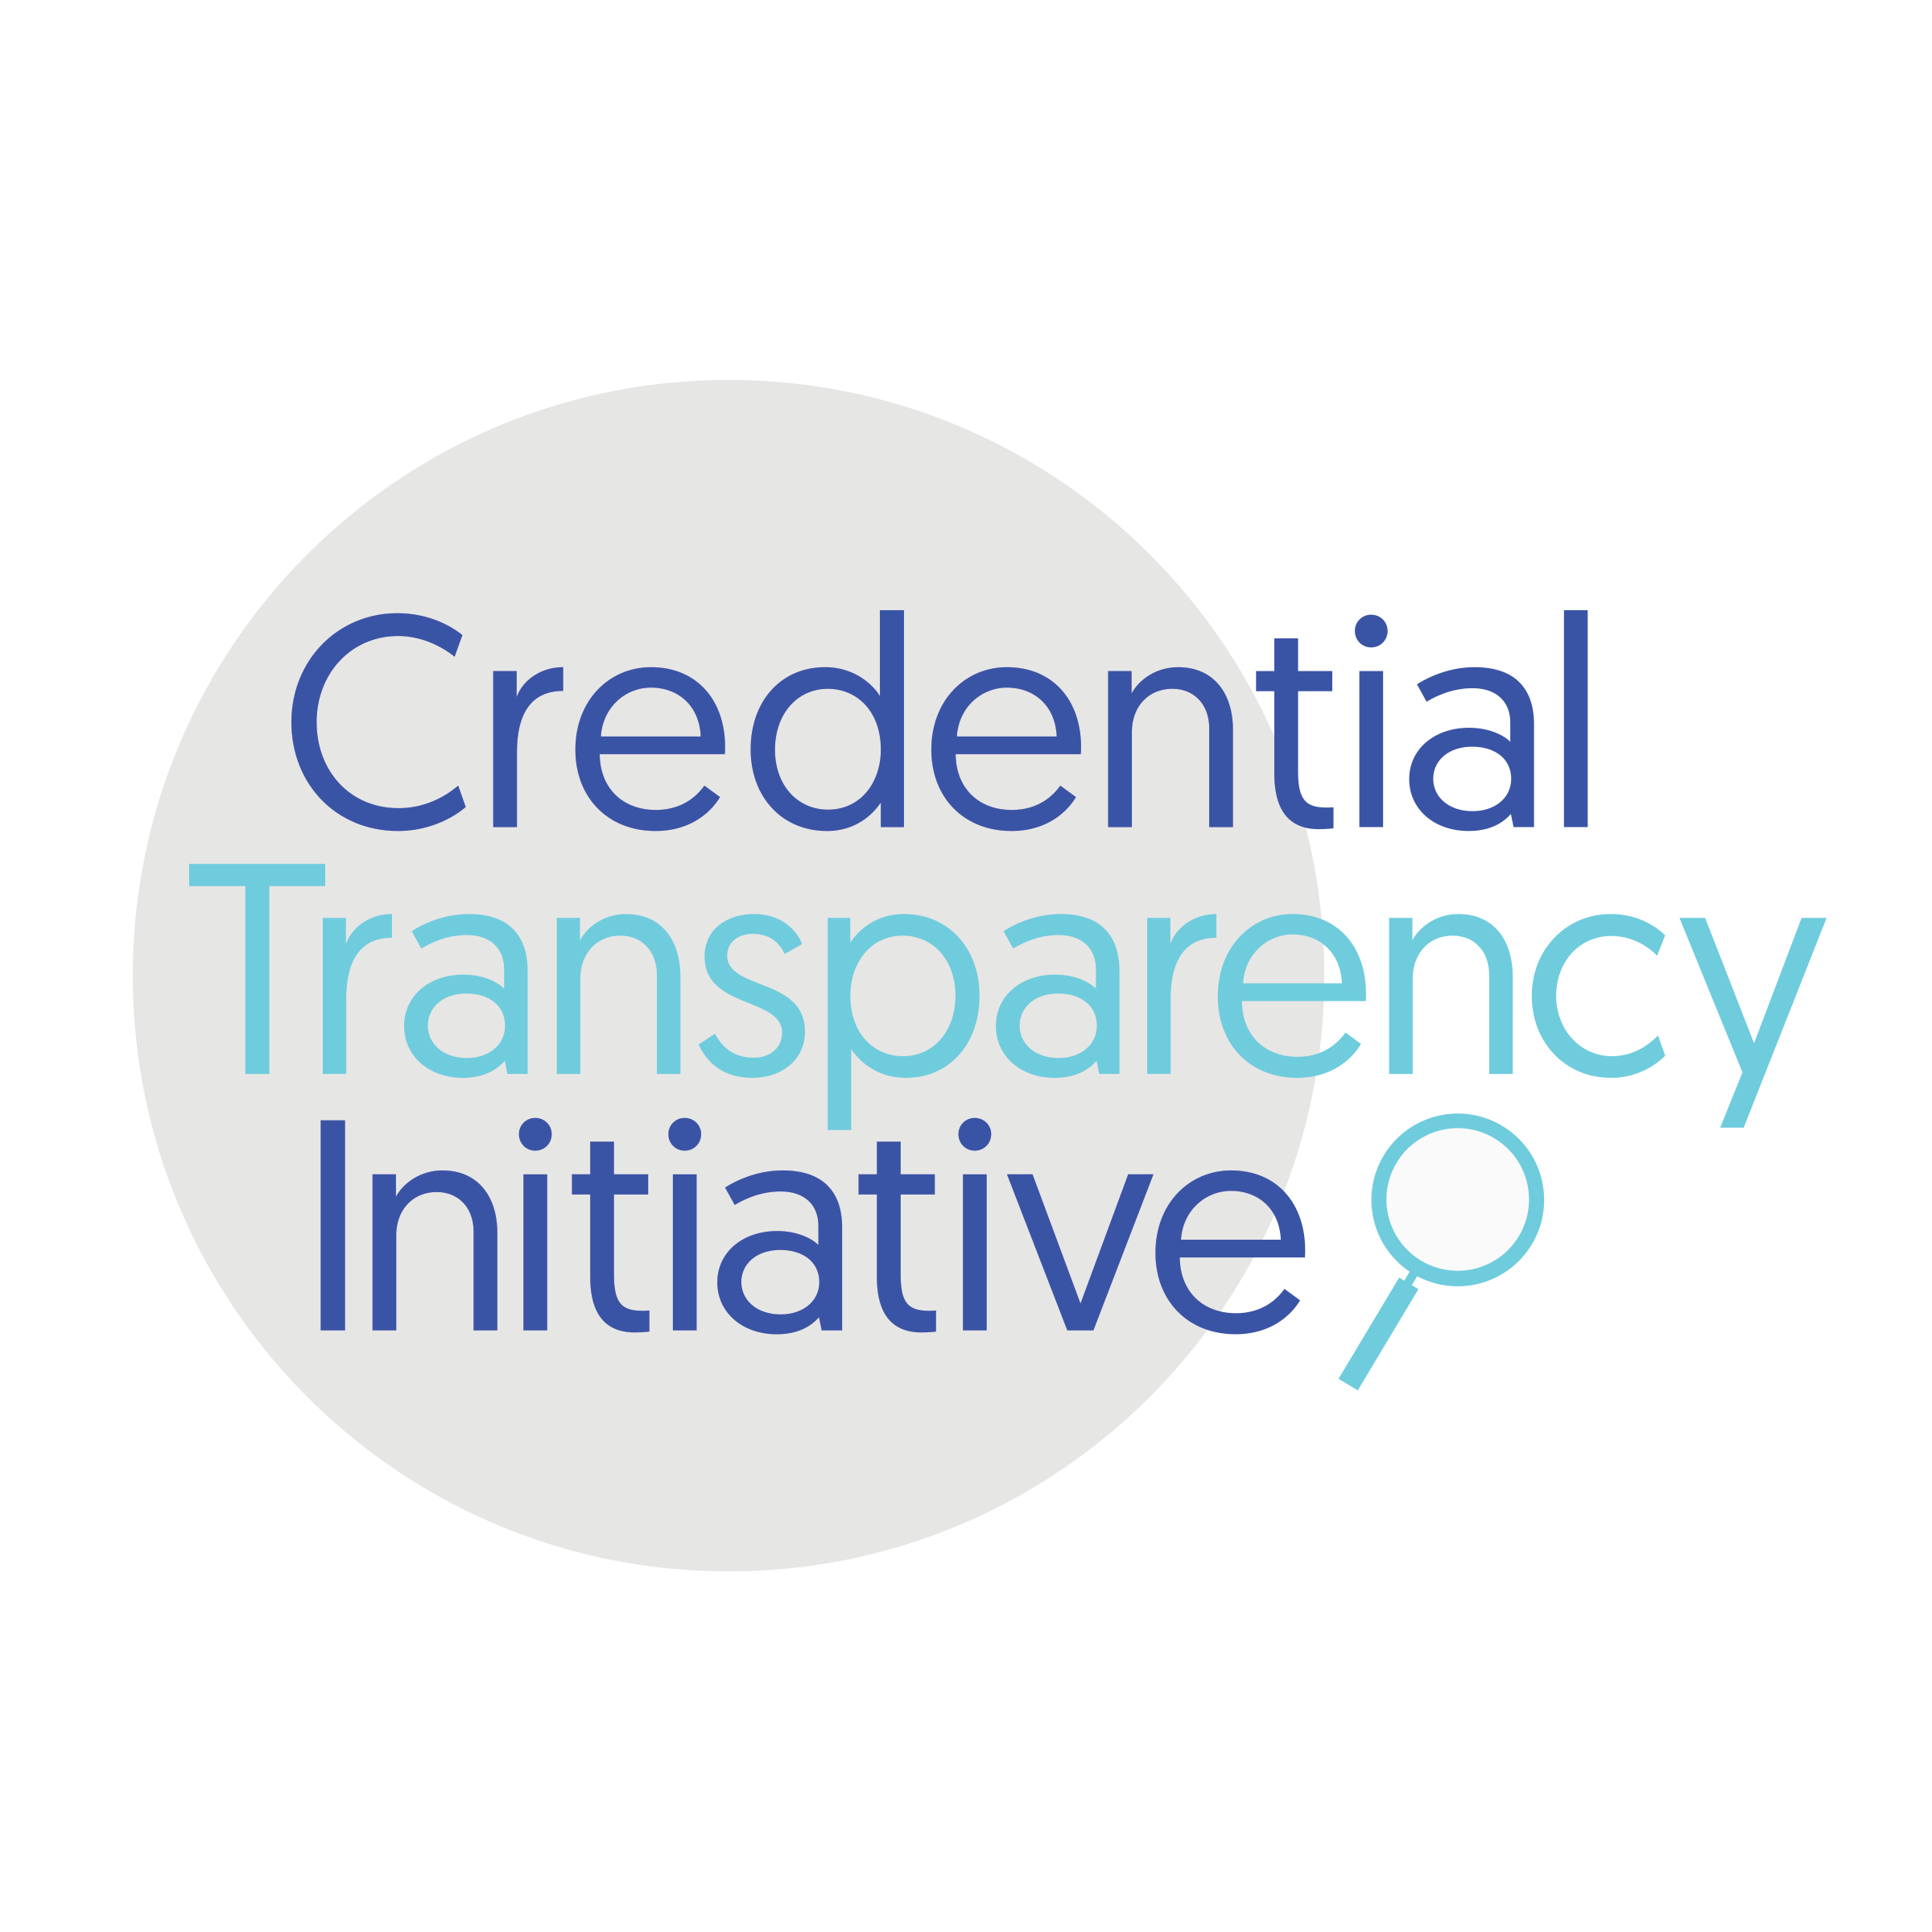 Credential Transparency Initiative